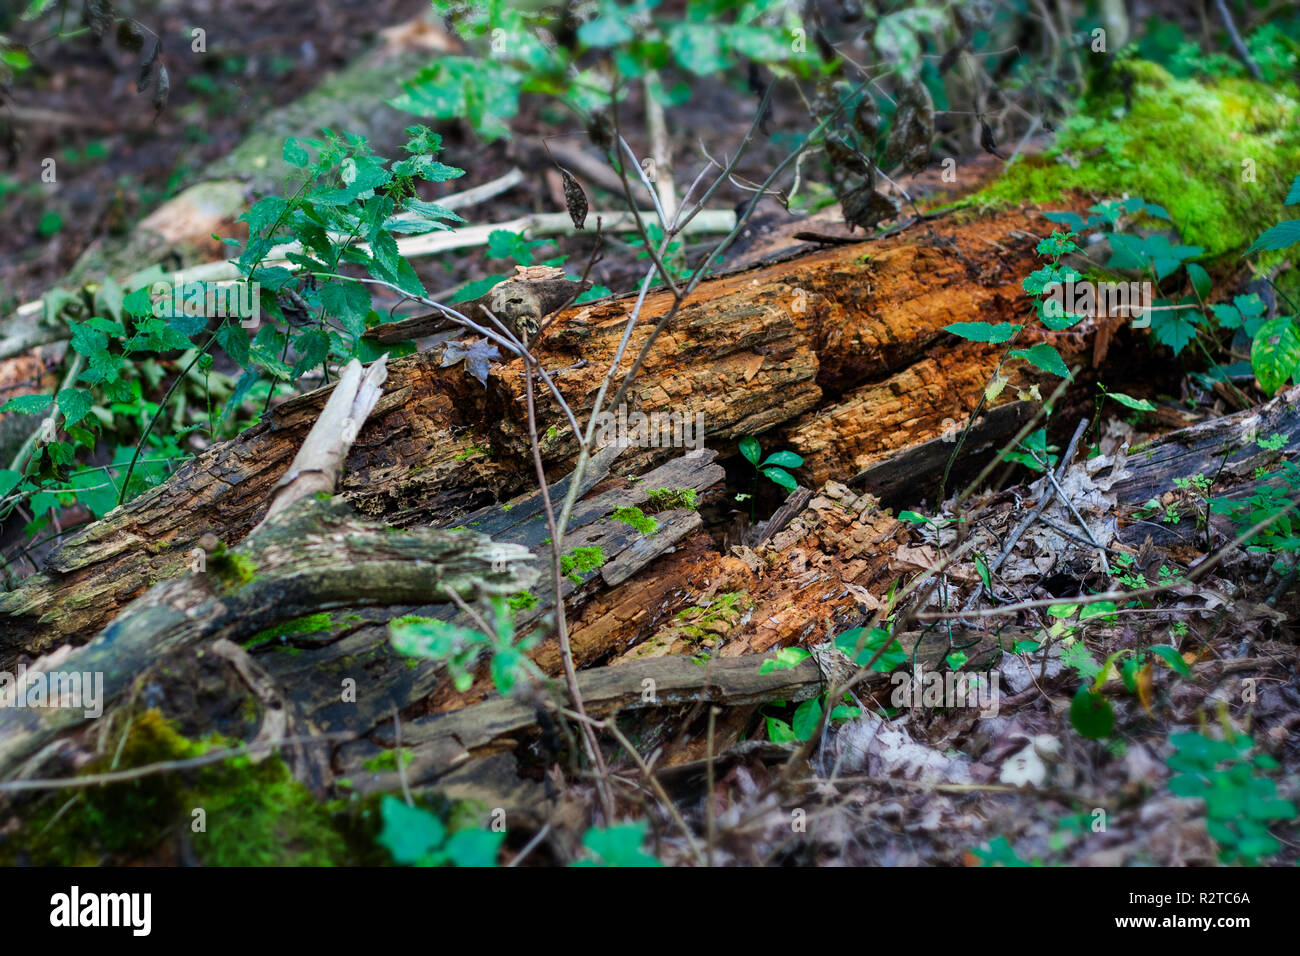 Decayed log is falling apart in the forest duff - Stock Image